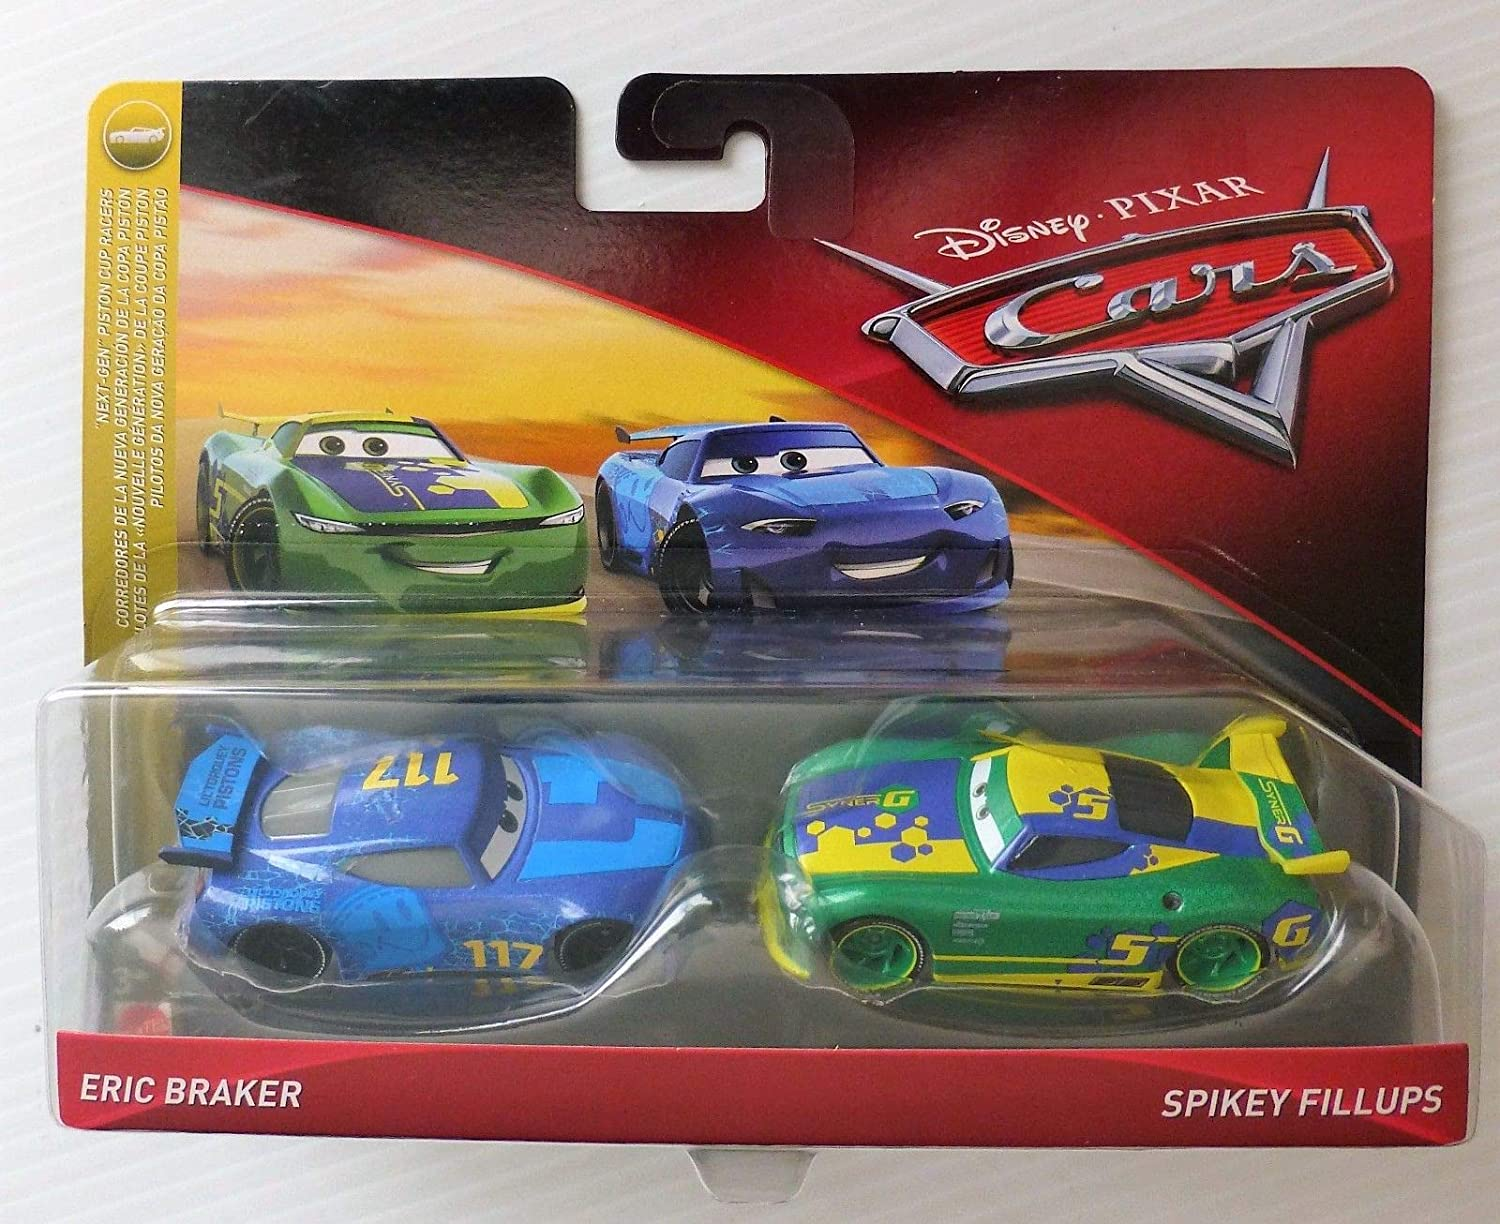 Amazon.com: Pixar Disney Cars 1:55 Scale Eric Braker and Spikey Fillups 2 Pack: Toys & Games